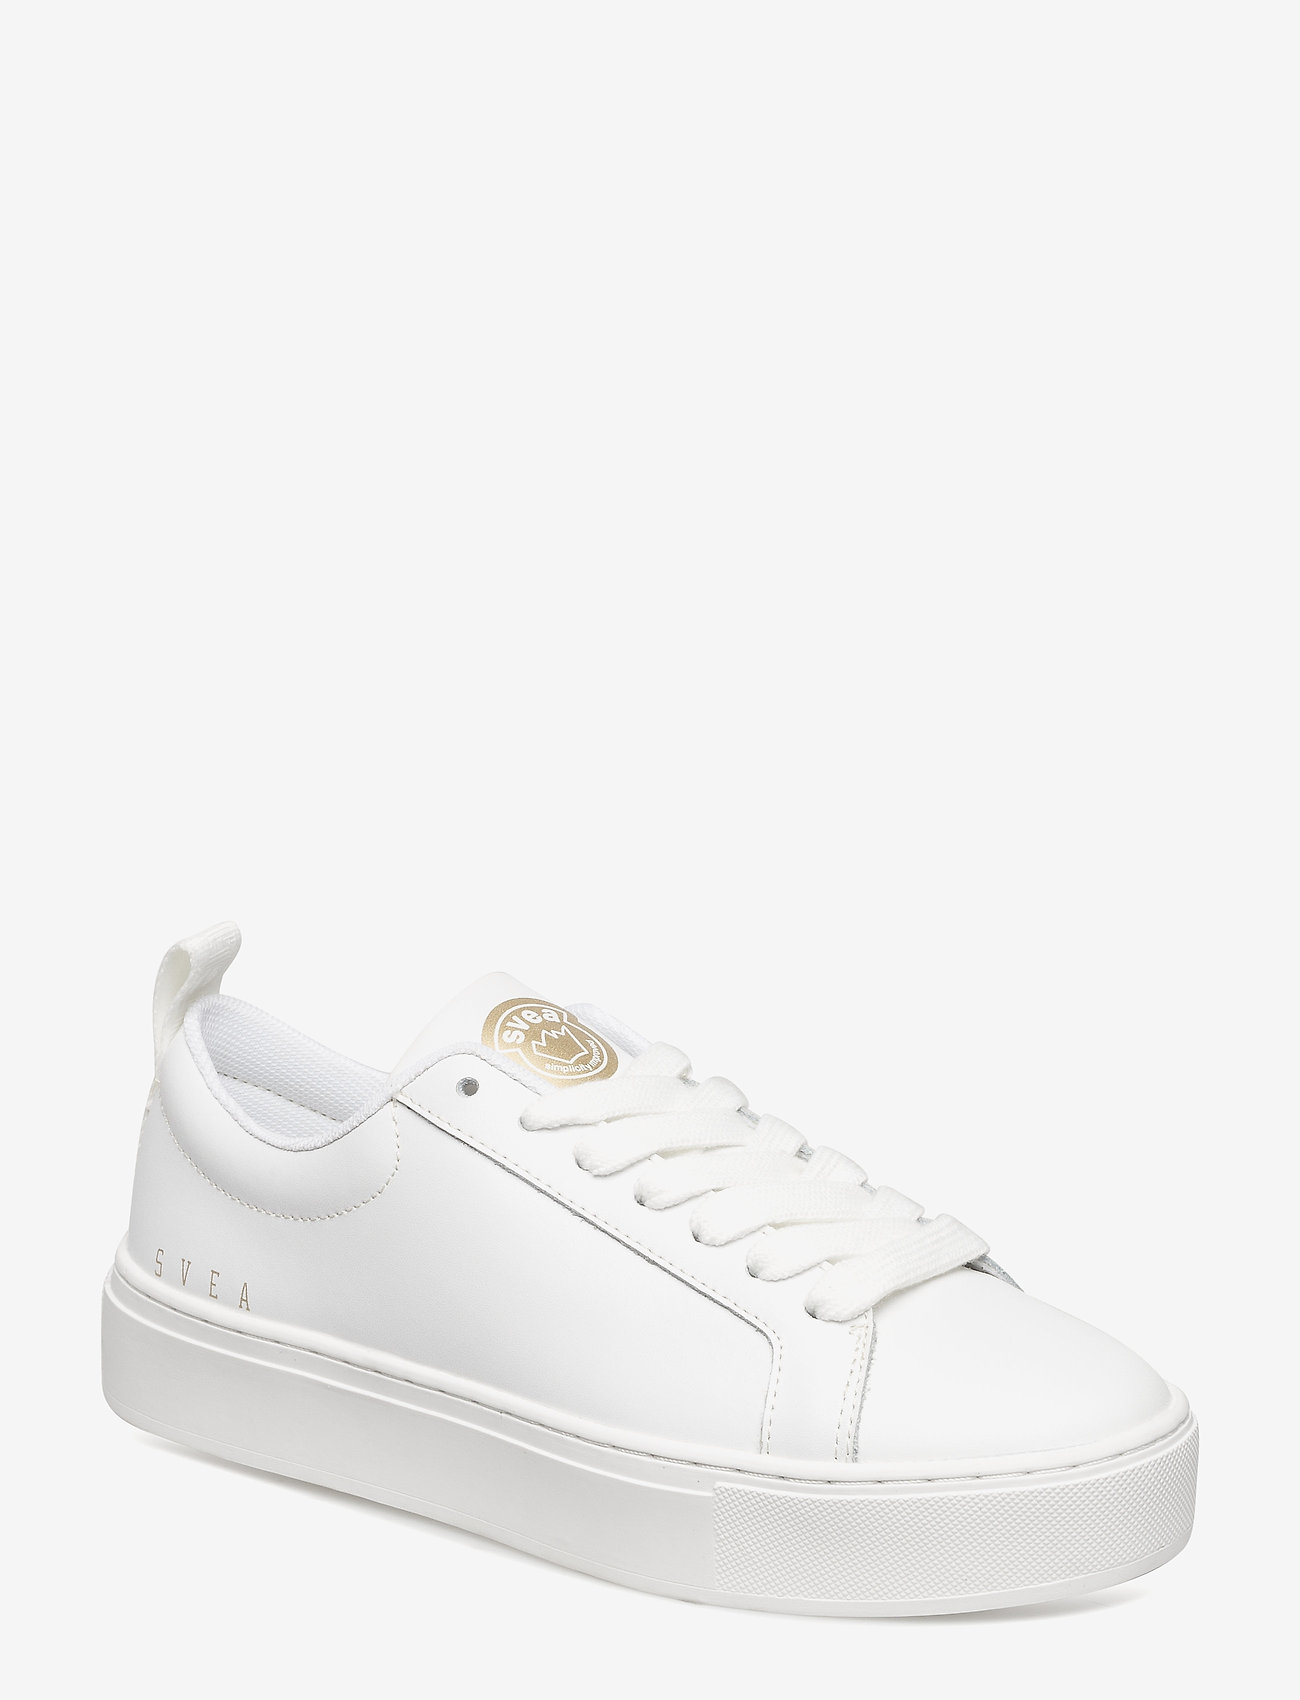 Svea - Arlo Two - laag sneakers - white - 0